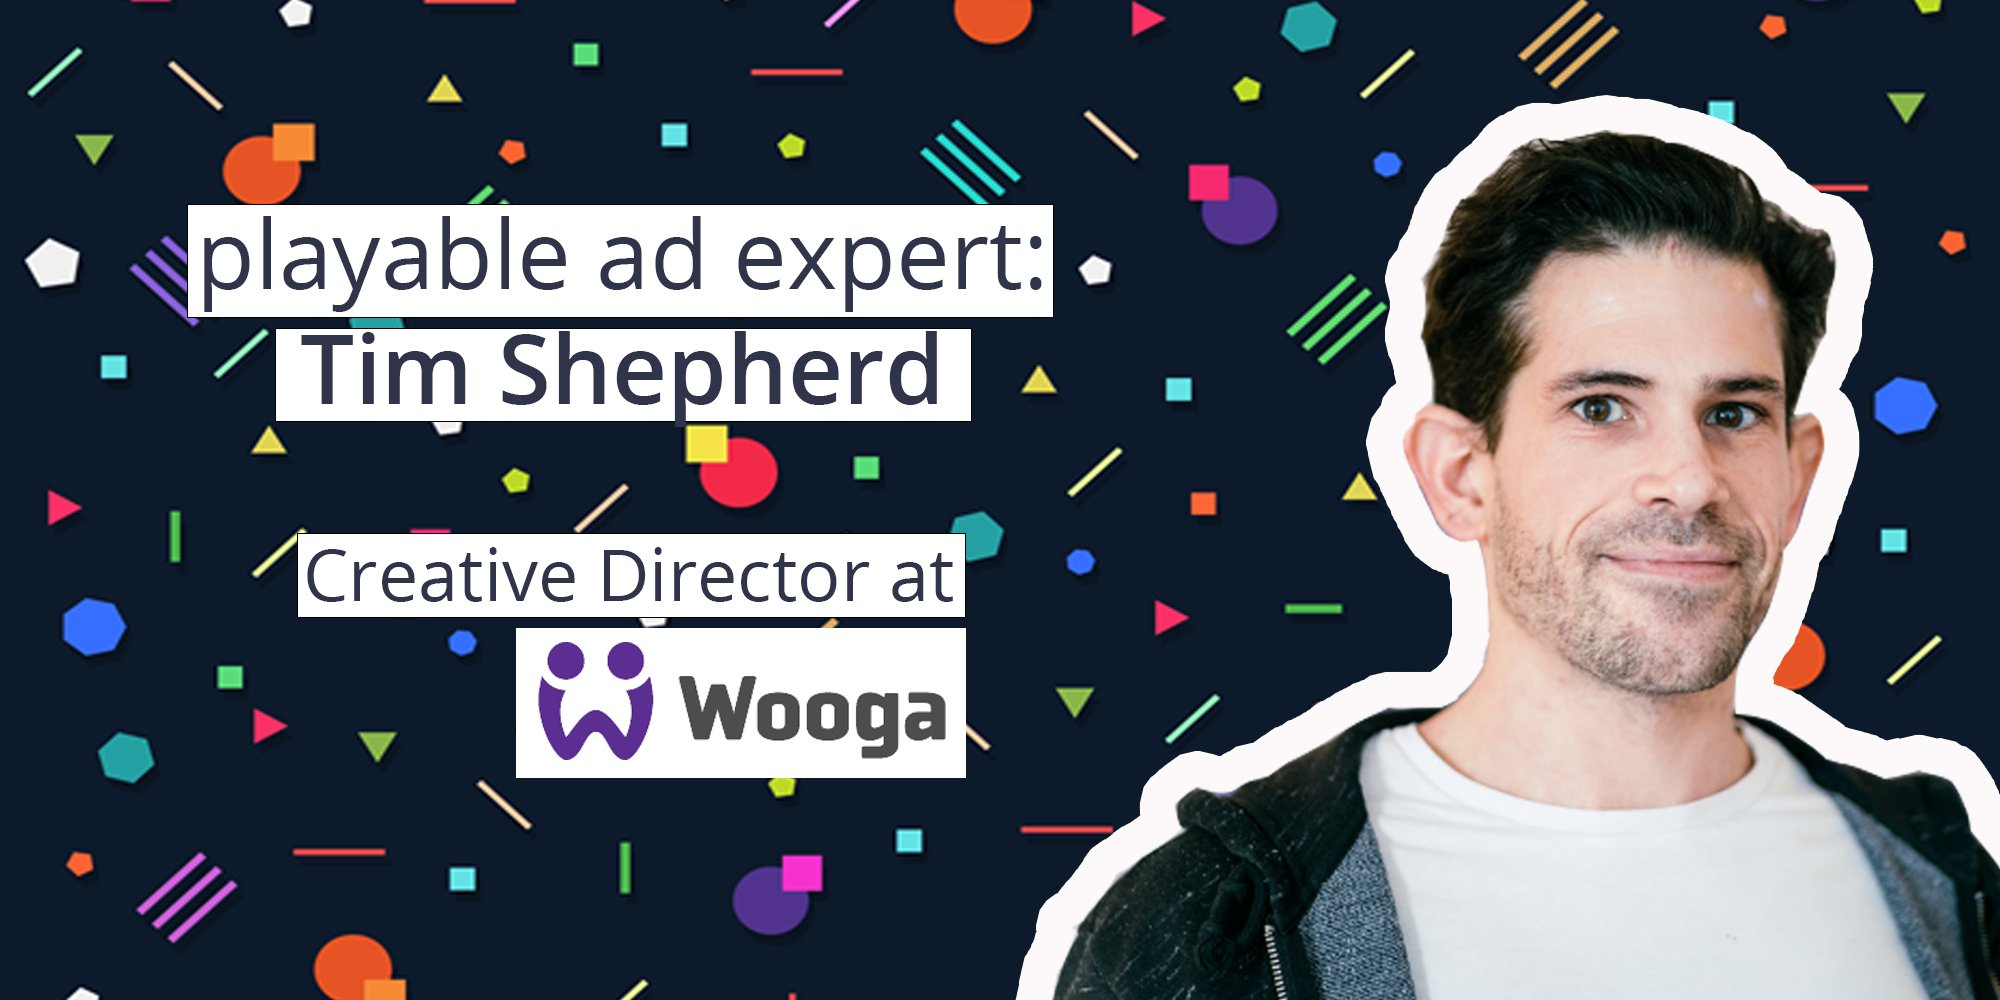 How to stop worrying and start making interactive ad? An interview with playable ad expert